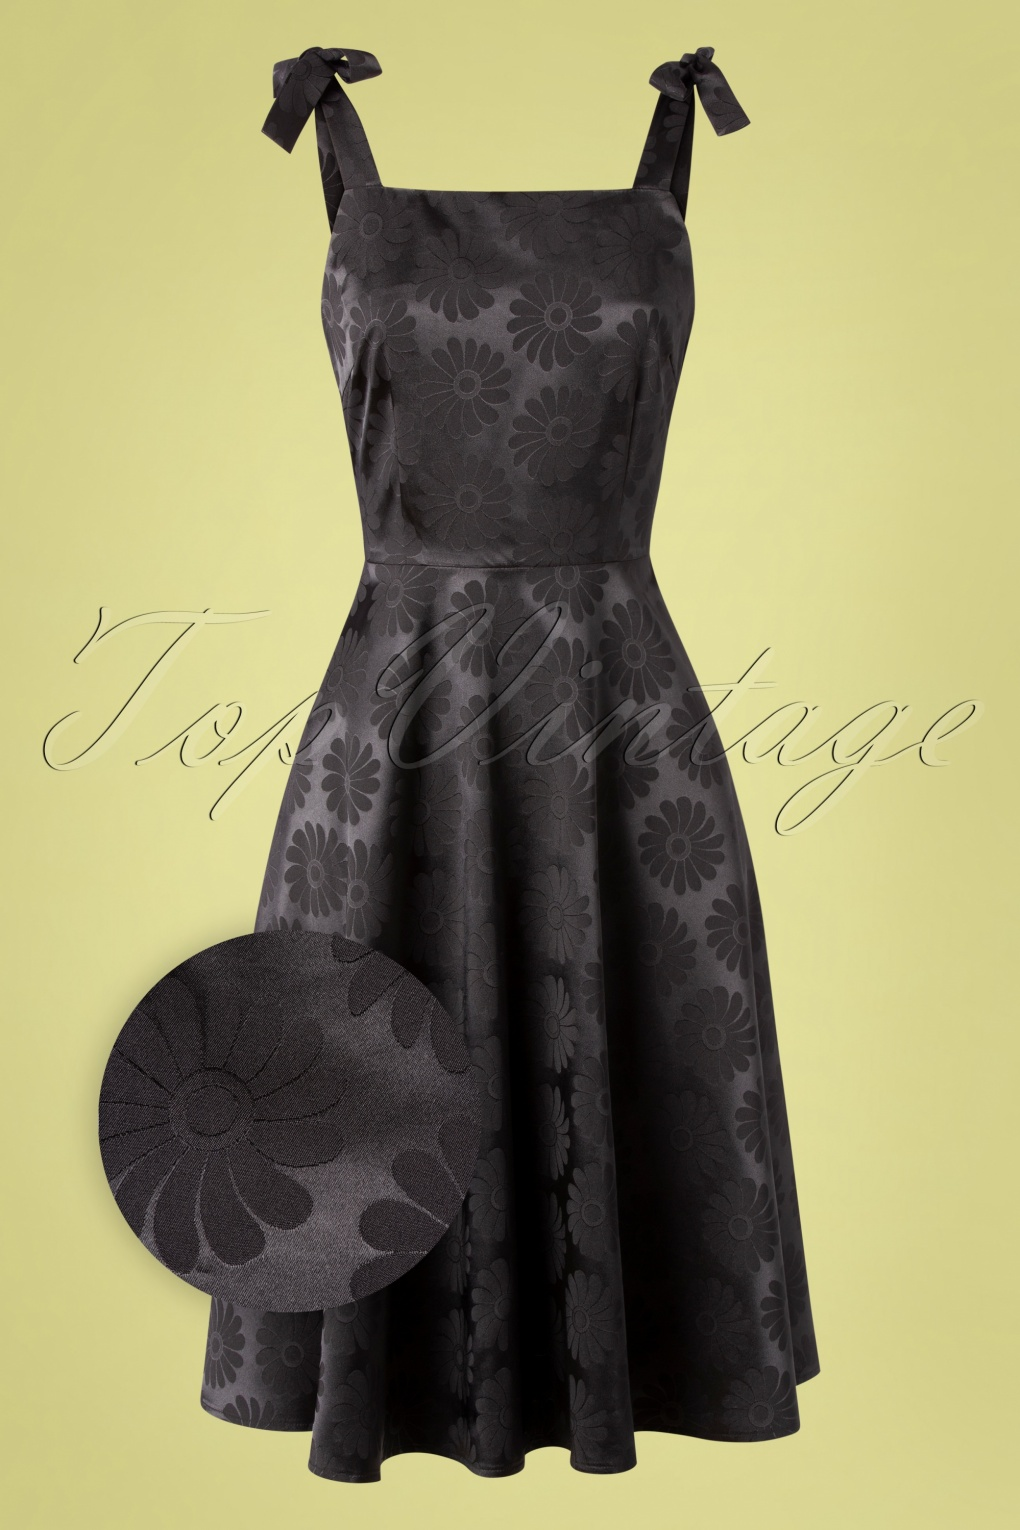 1950s Cocktail Dresses, Party Dresses 50s Begonia Floral Skater Dress in Black £53.28 AT vintagedancer.com